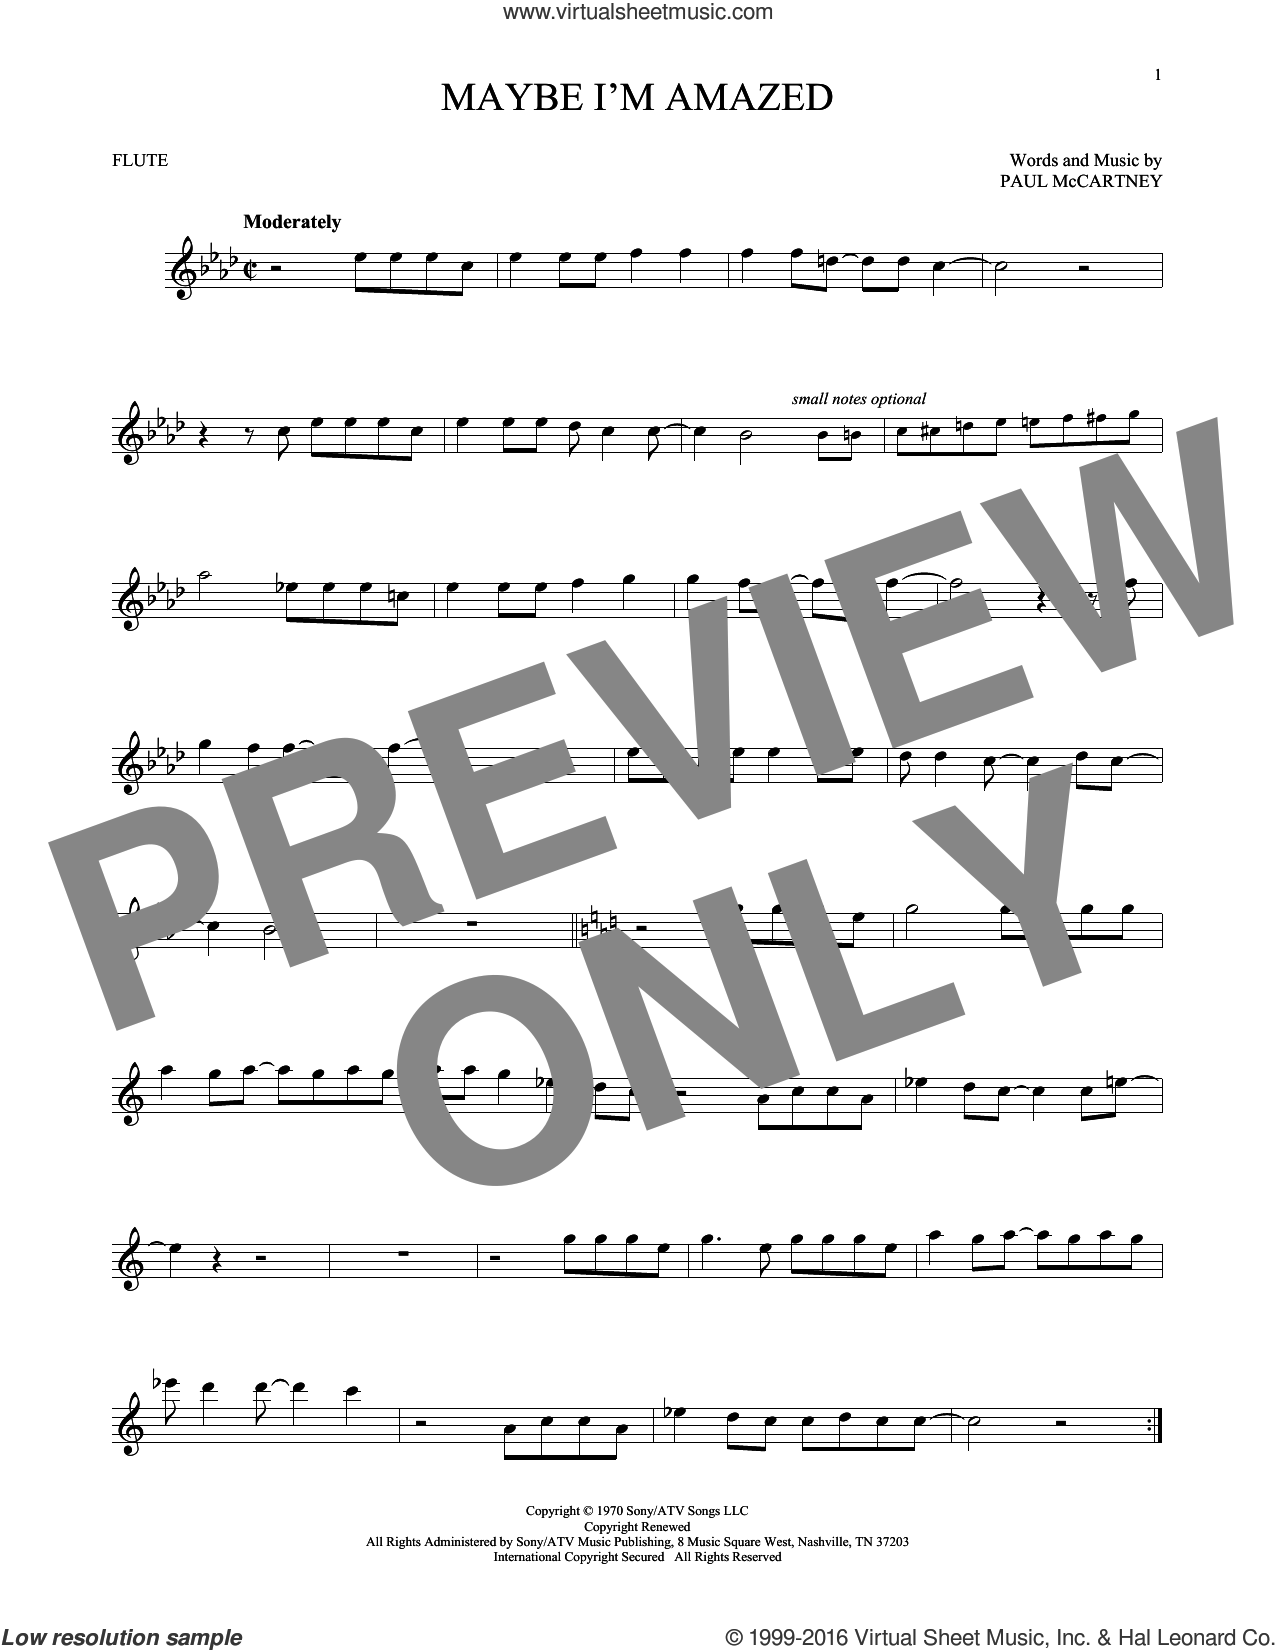 Maybe I'm Amazed sheet music for flute solo by Paul McCartney, intermediate skill level